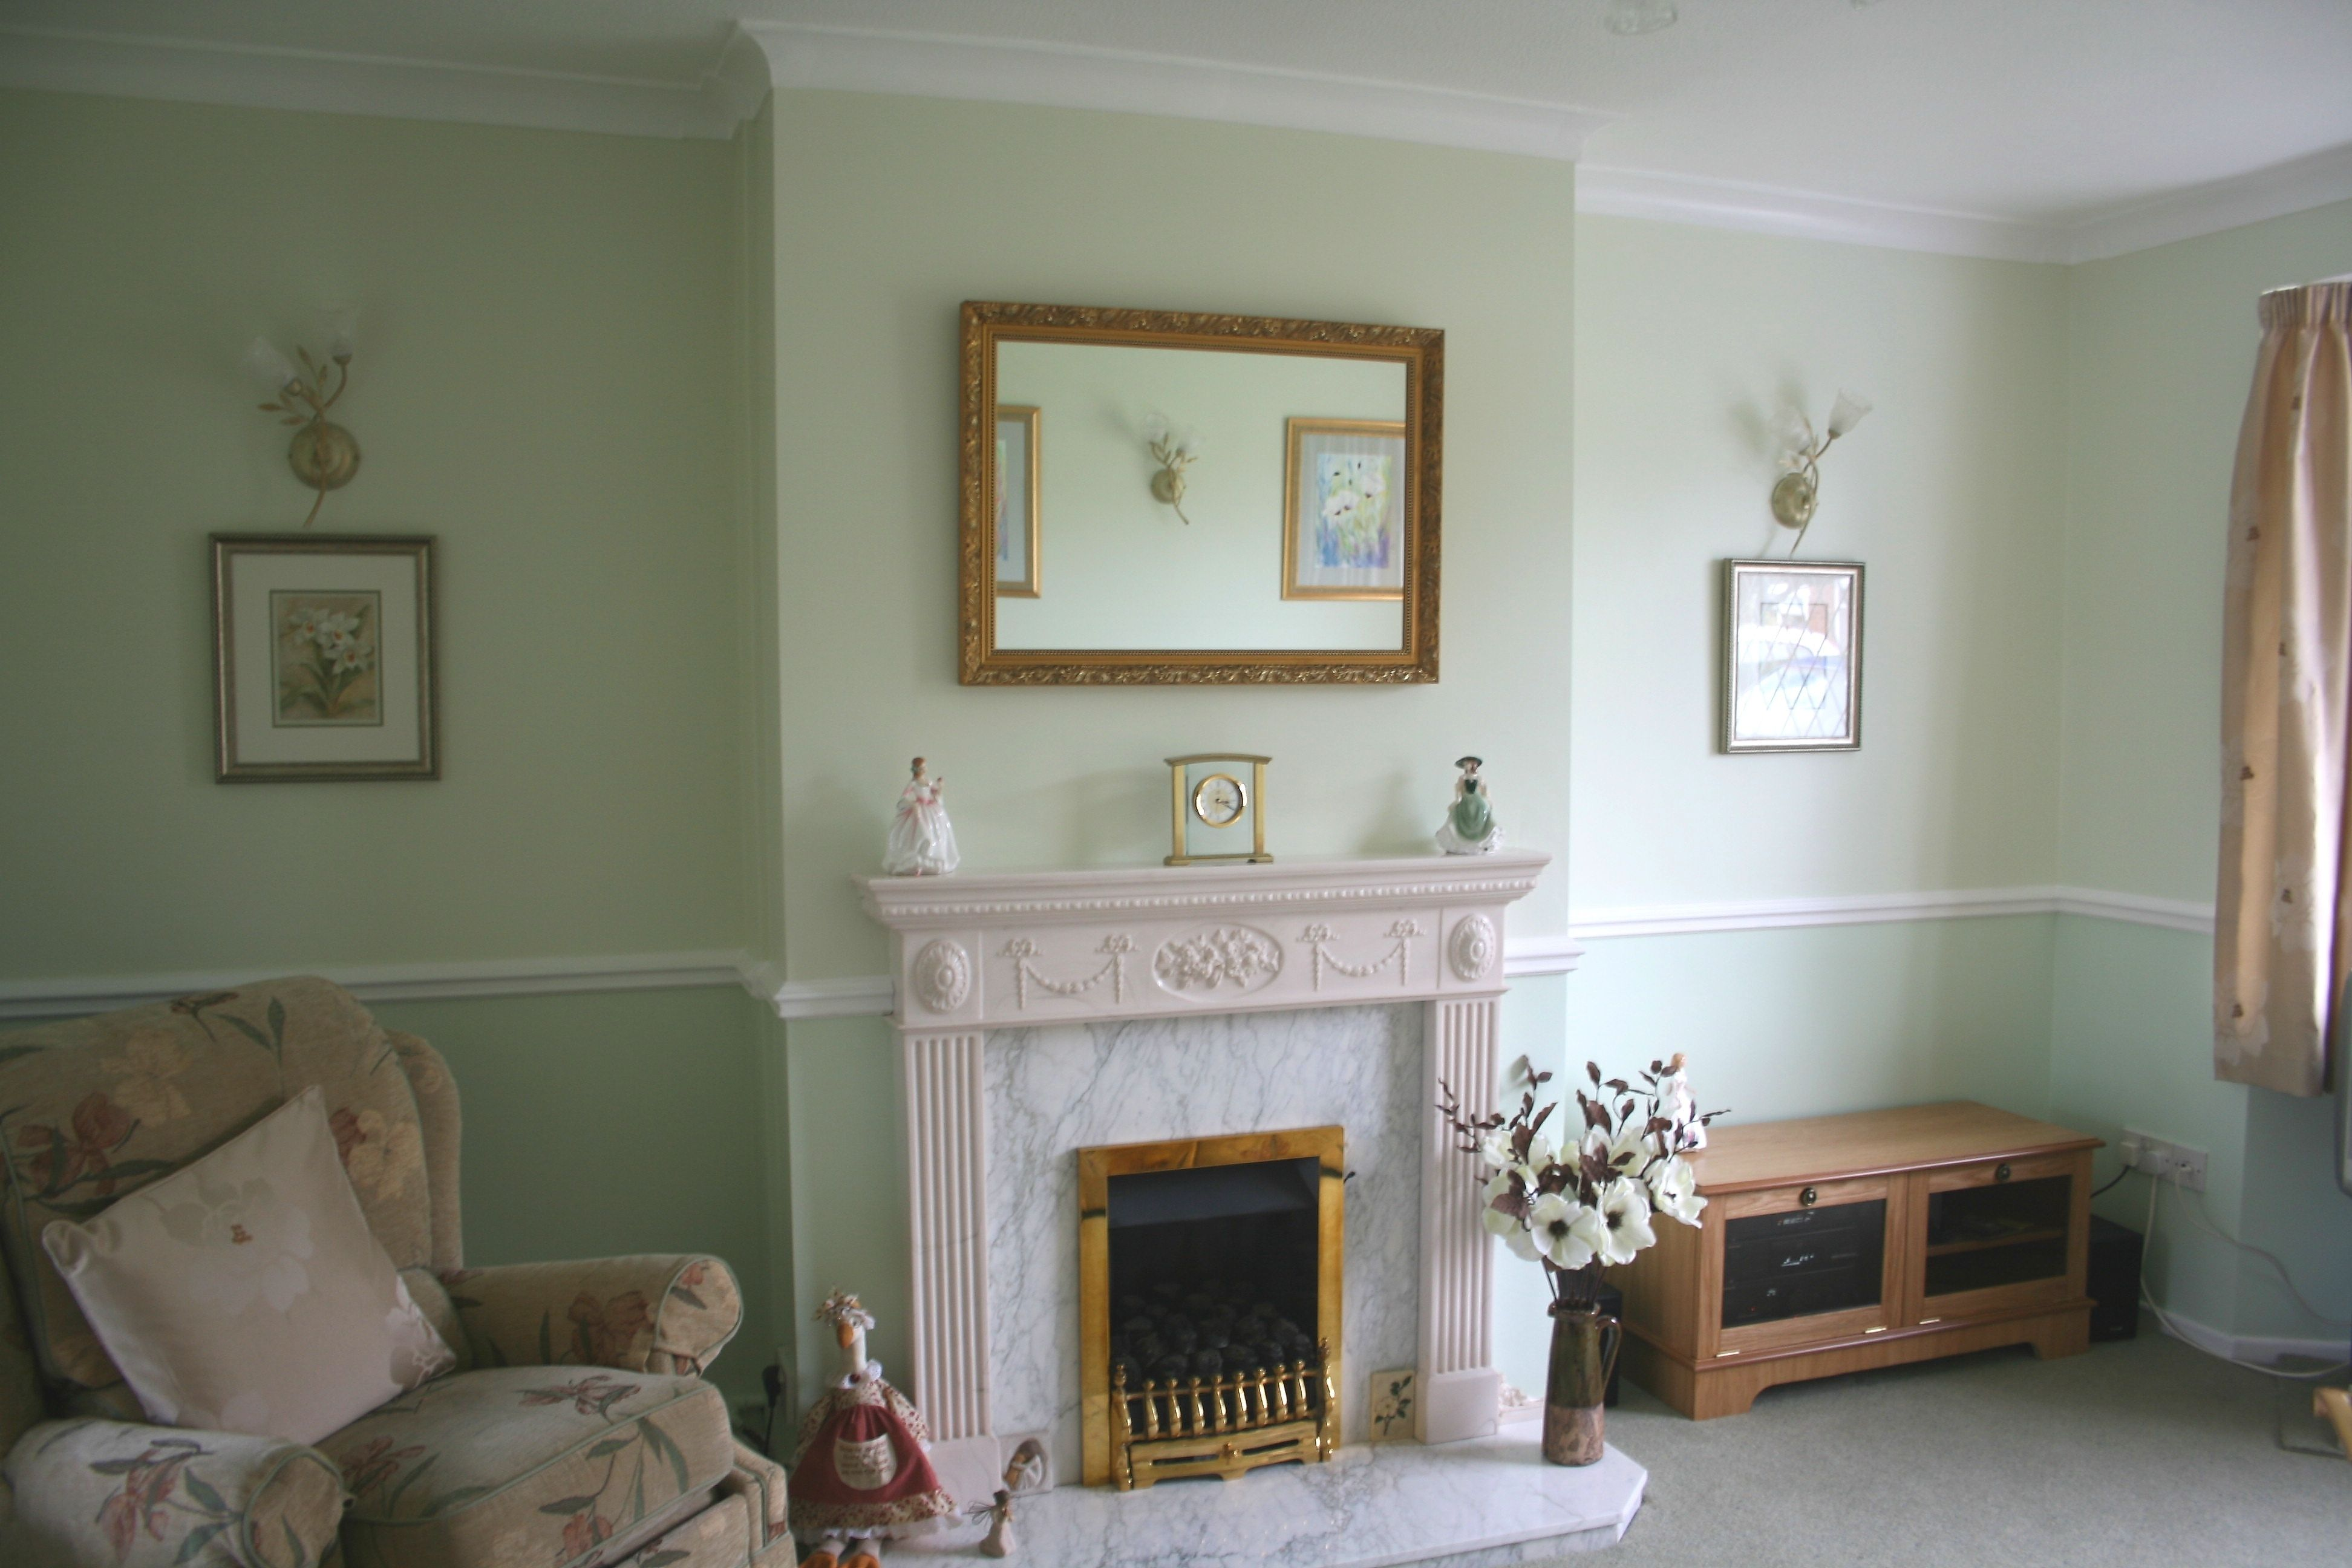 Decorating Ideas For Living Room With Dado Rail We Spend Lots Of Time In Our Homes So All Of